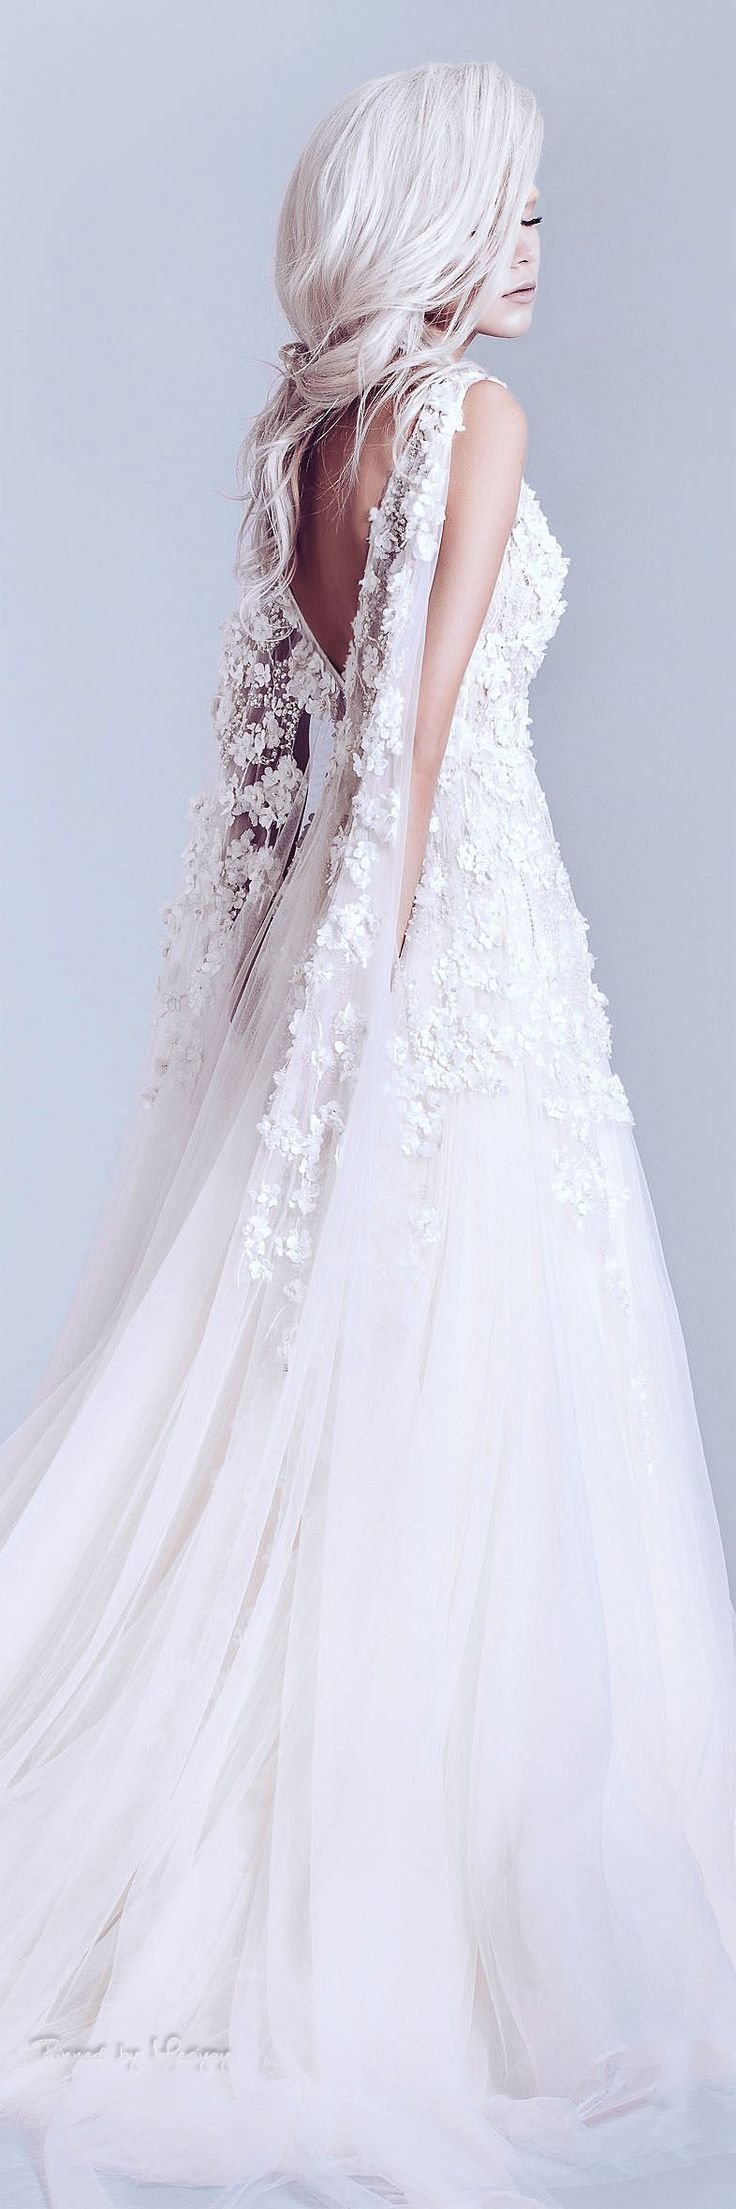 Alfazairy SS 2015 Ok so if we get married this is the dress....